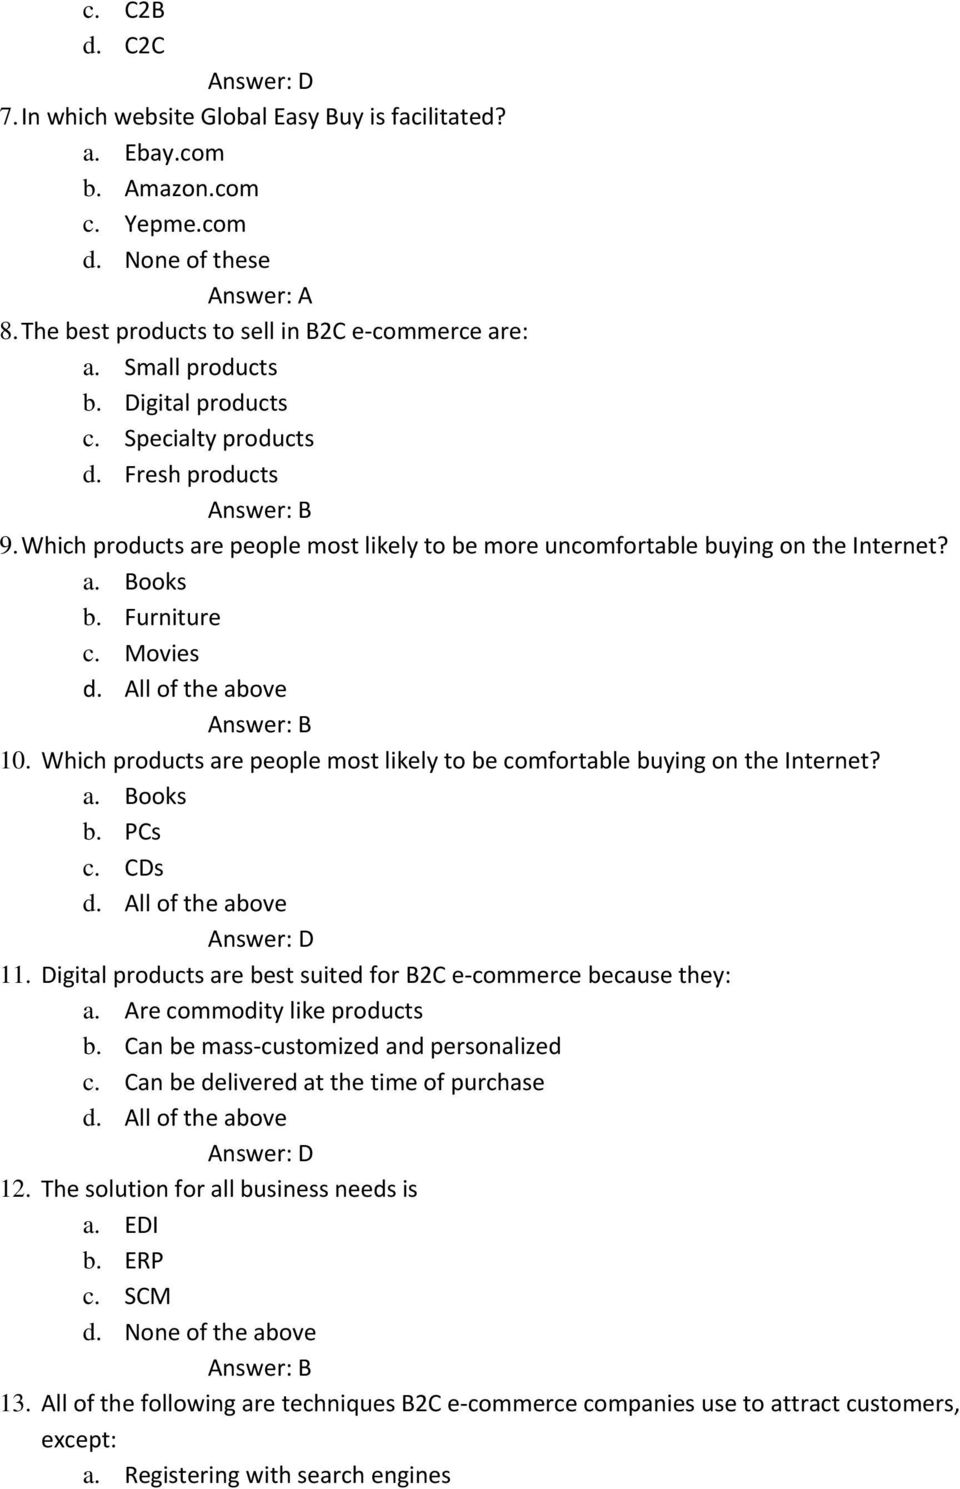 Computer Fundamentals Questions And Answers Multiple Choice Pdf